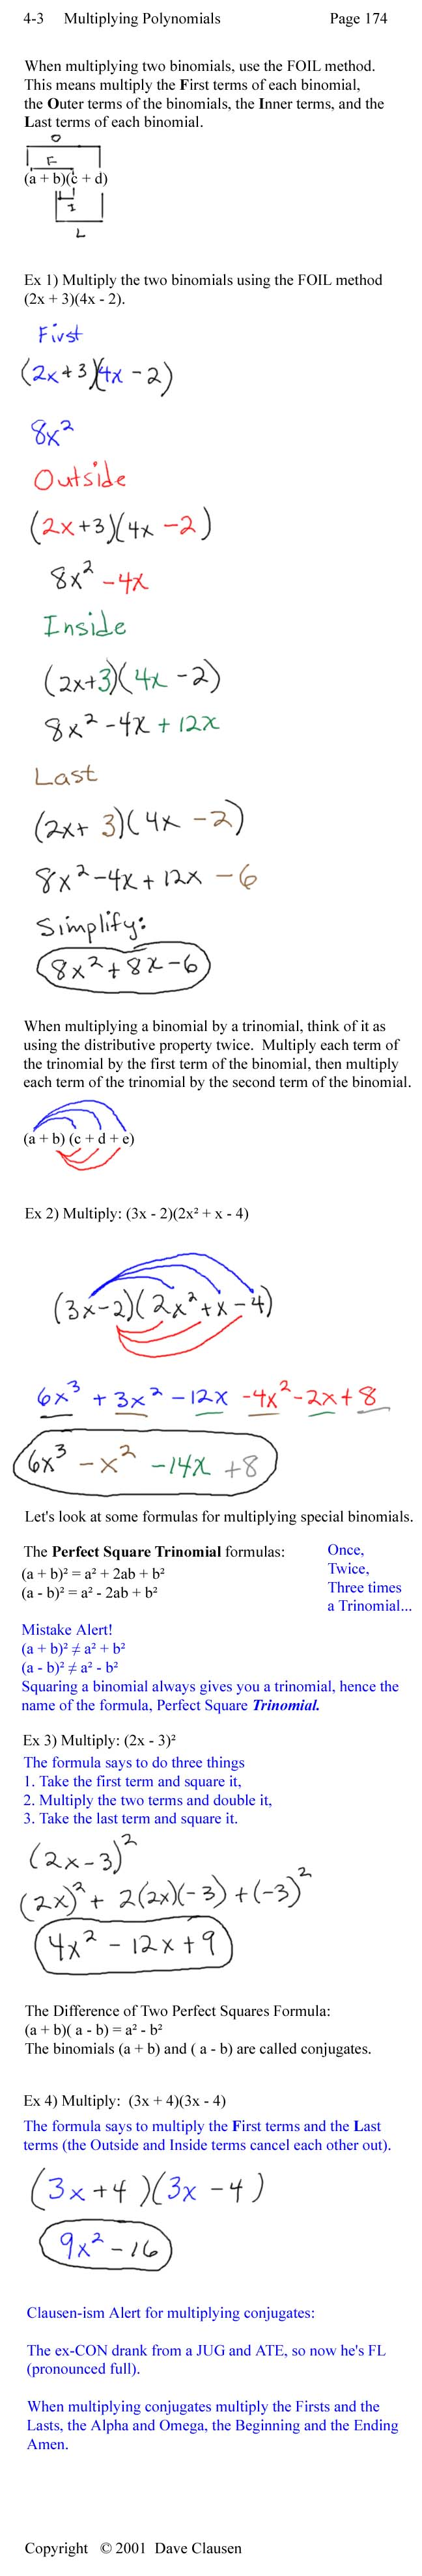 multiplying polynomials word problems doc www sfponline uploads 76 powers and exponents word. Black Bedroom Furniture Sets. Home Design Ideas